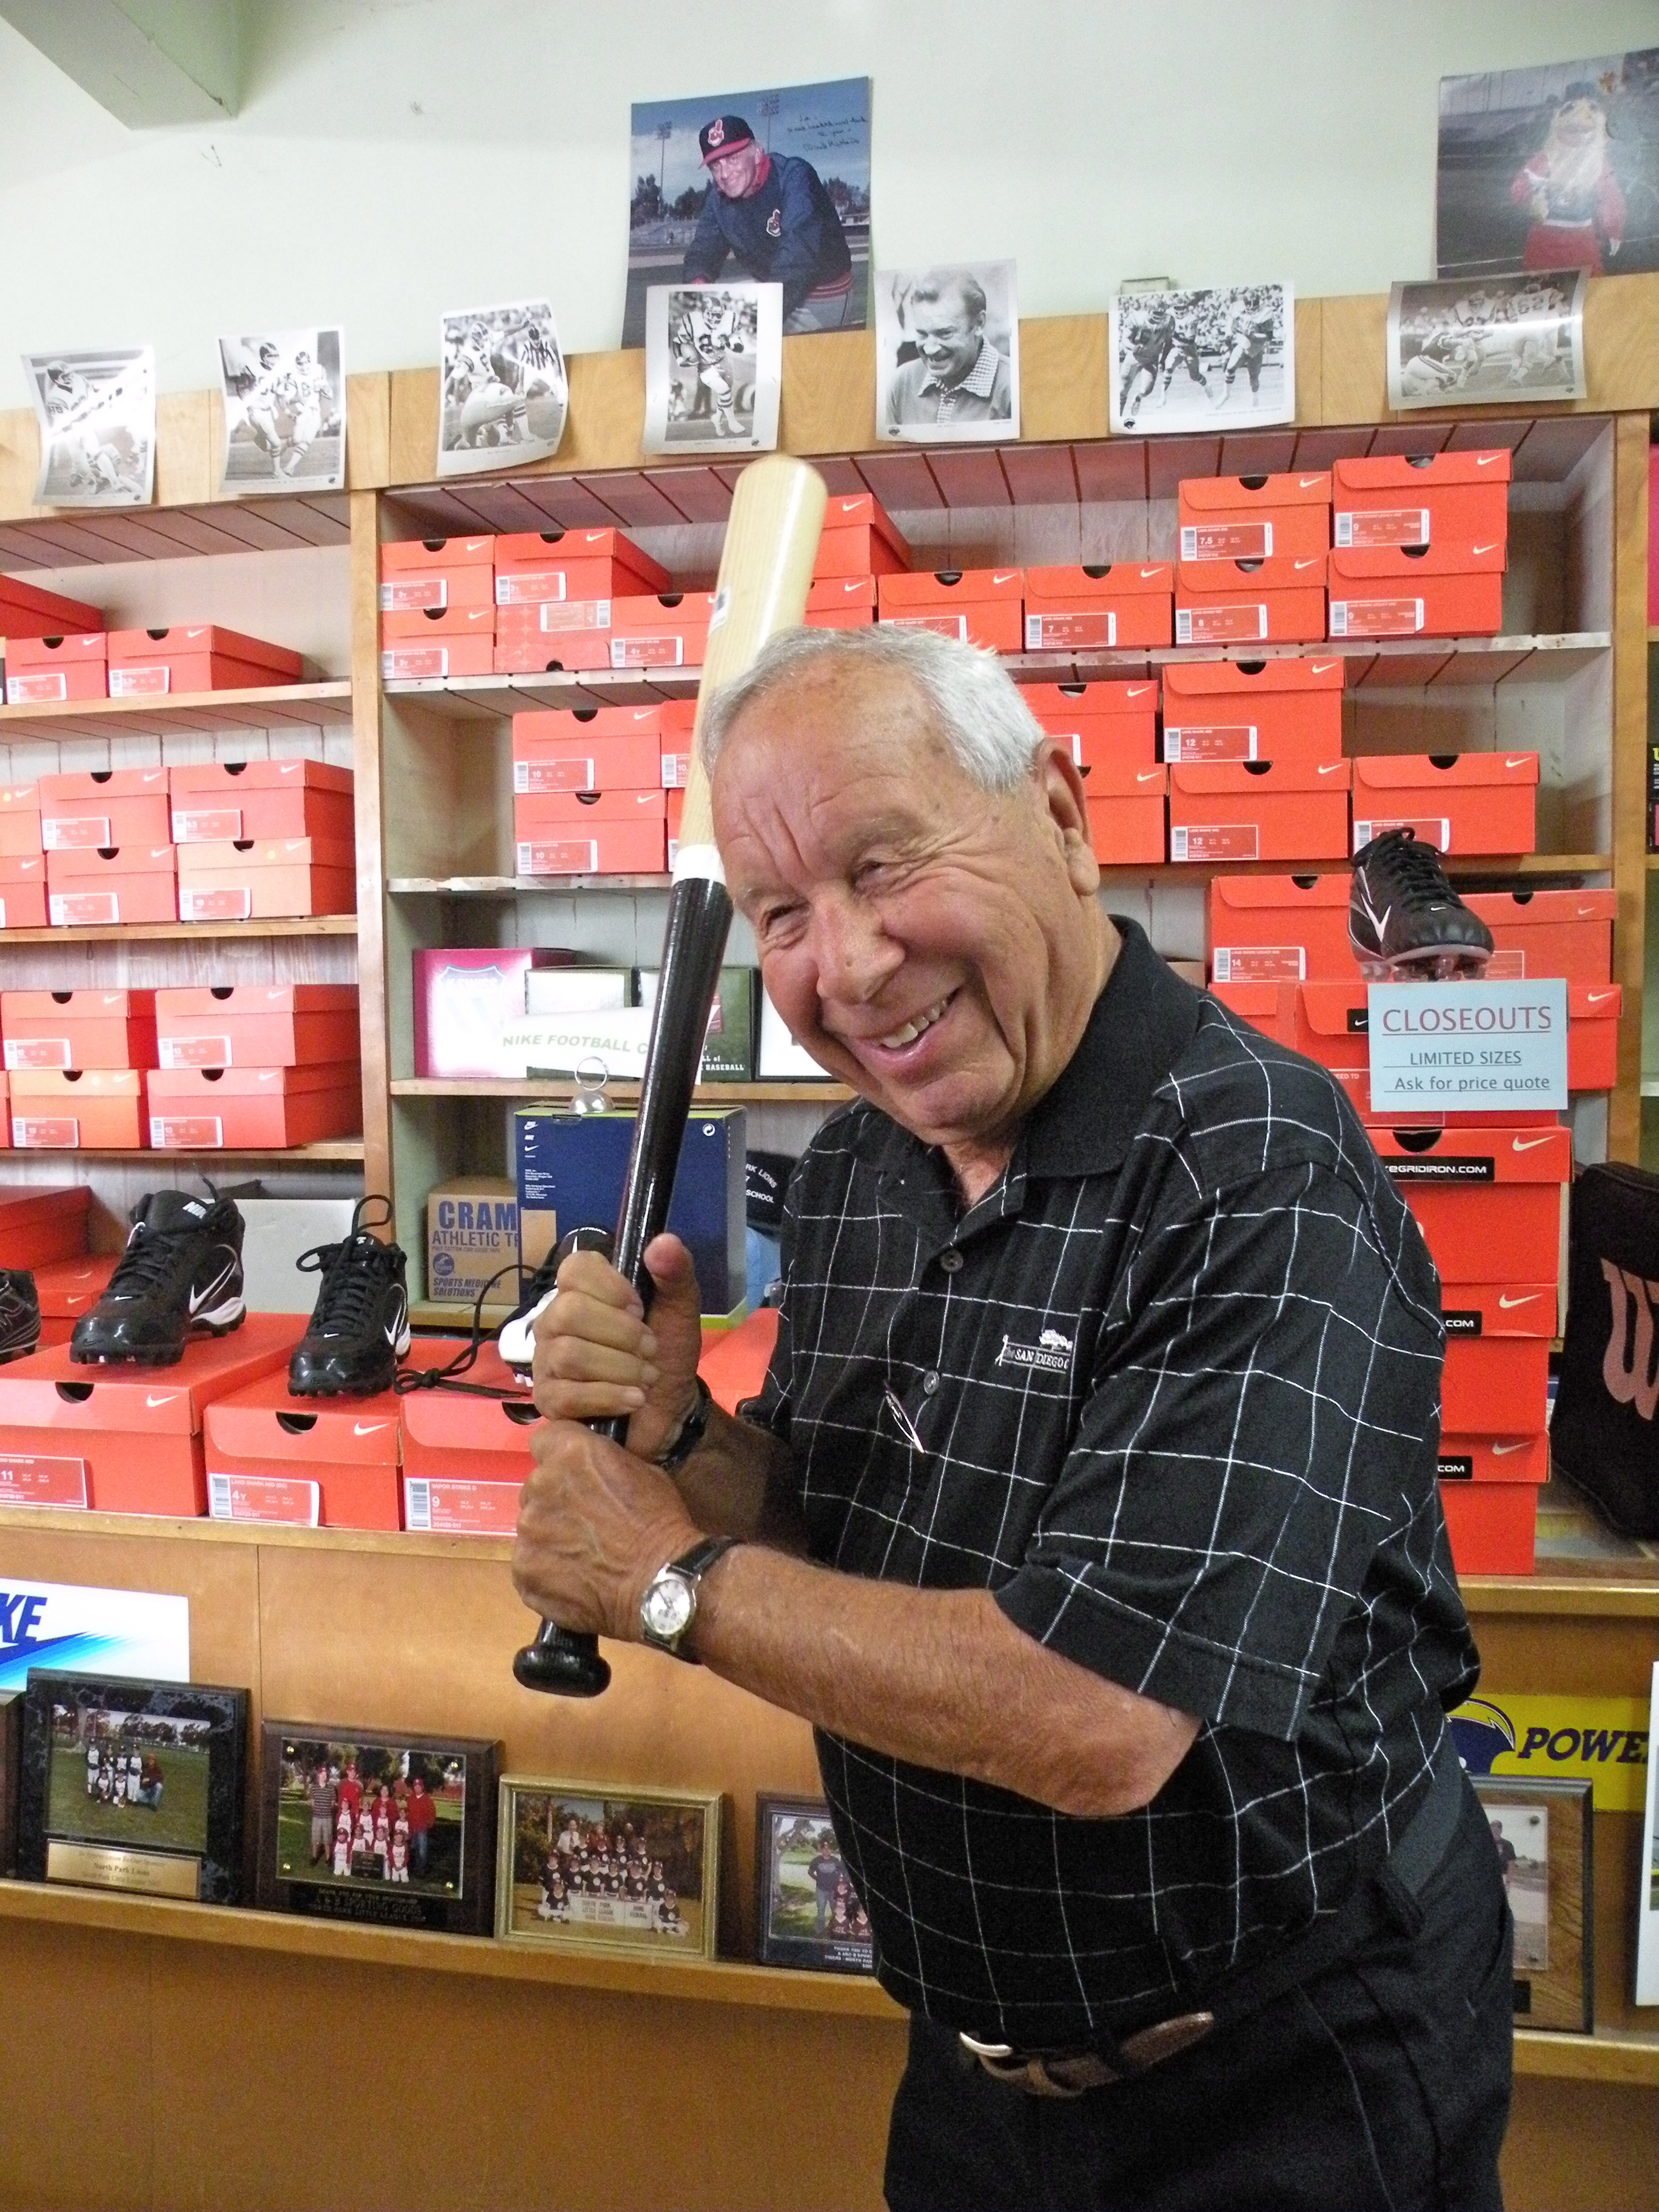 Joe in his A&B Sporting Goods store in North Park